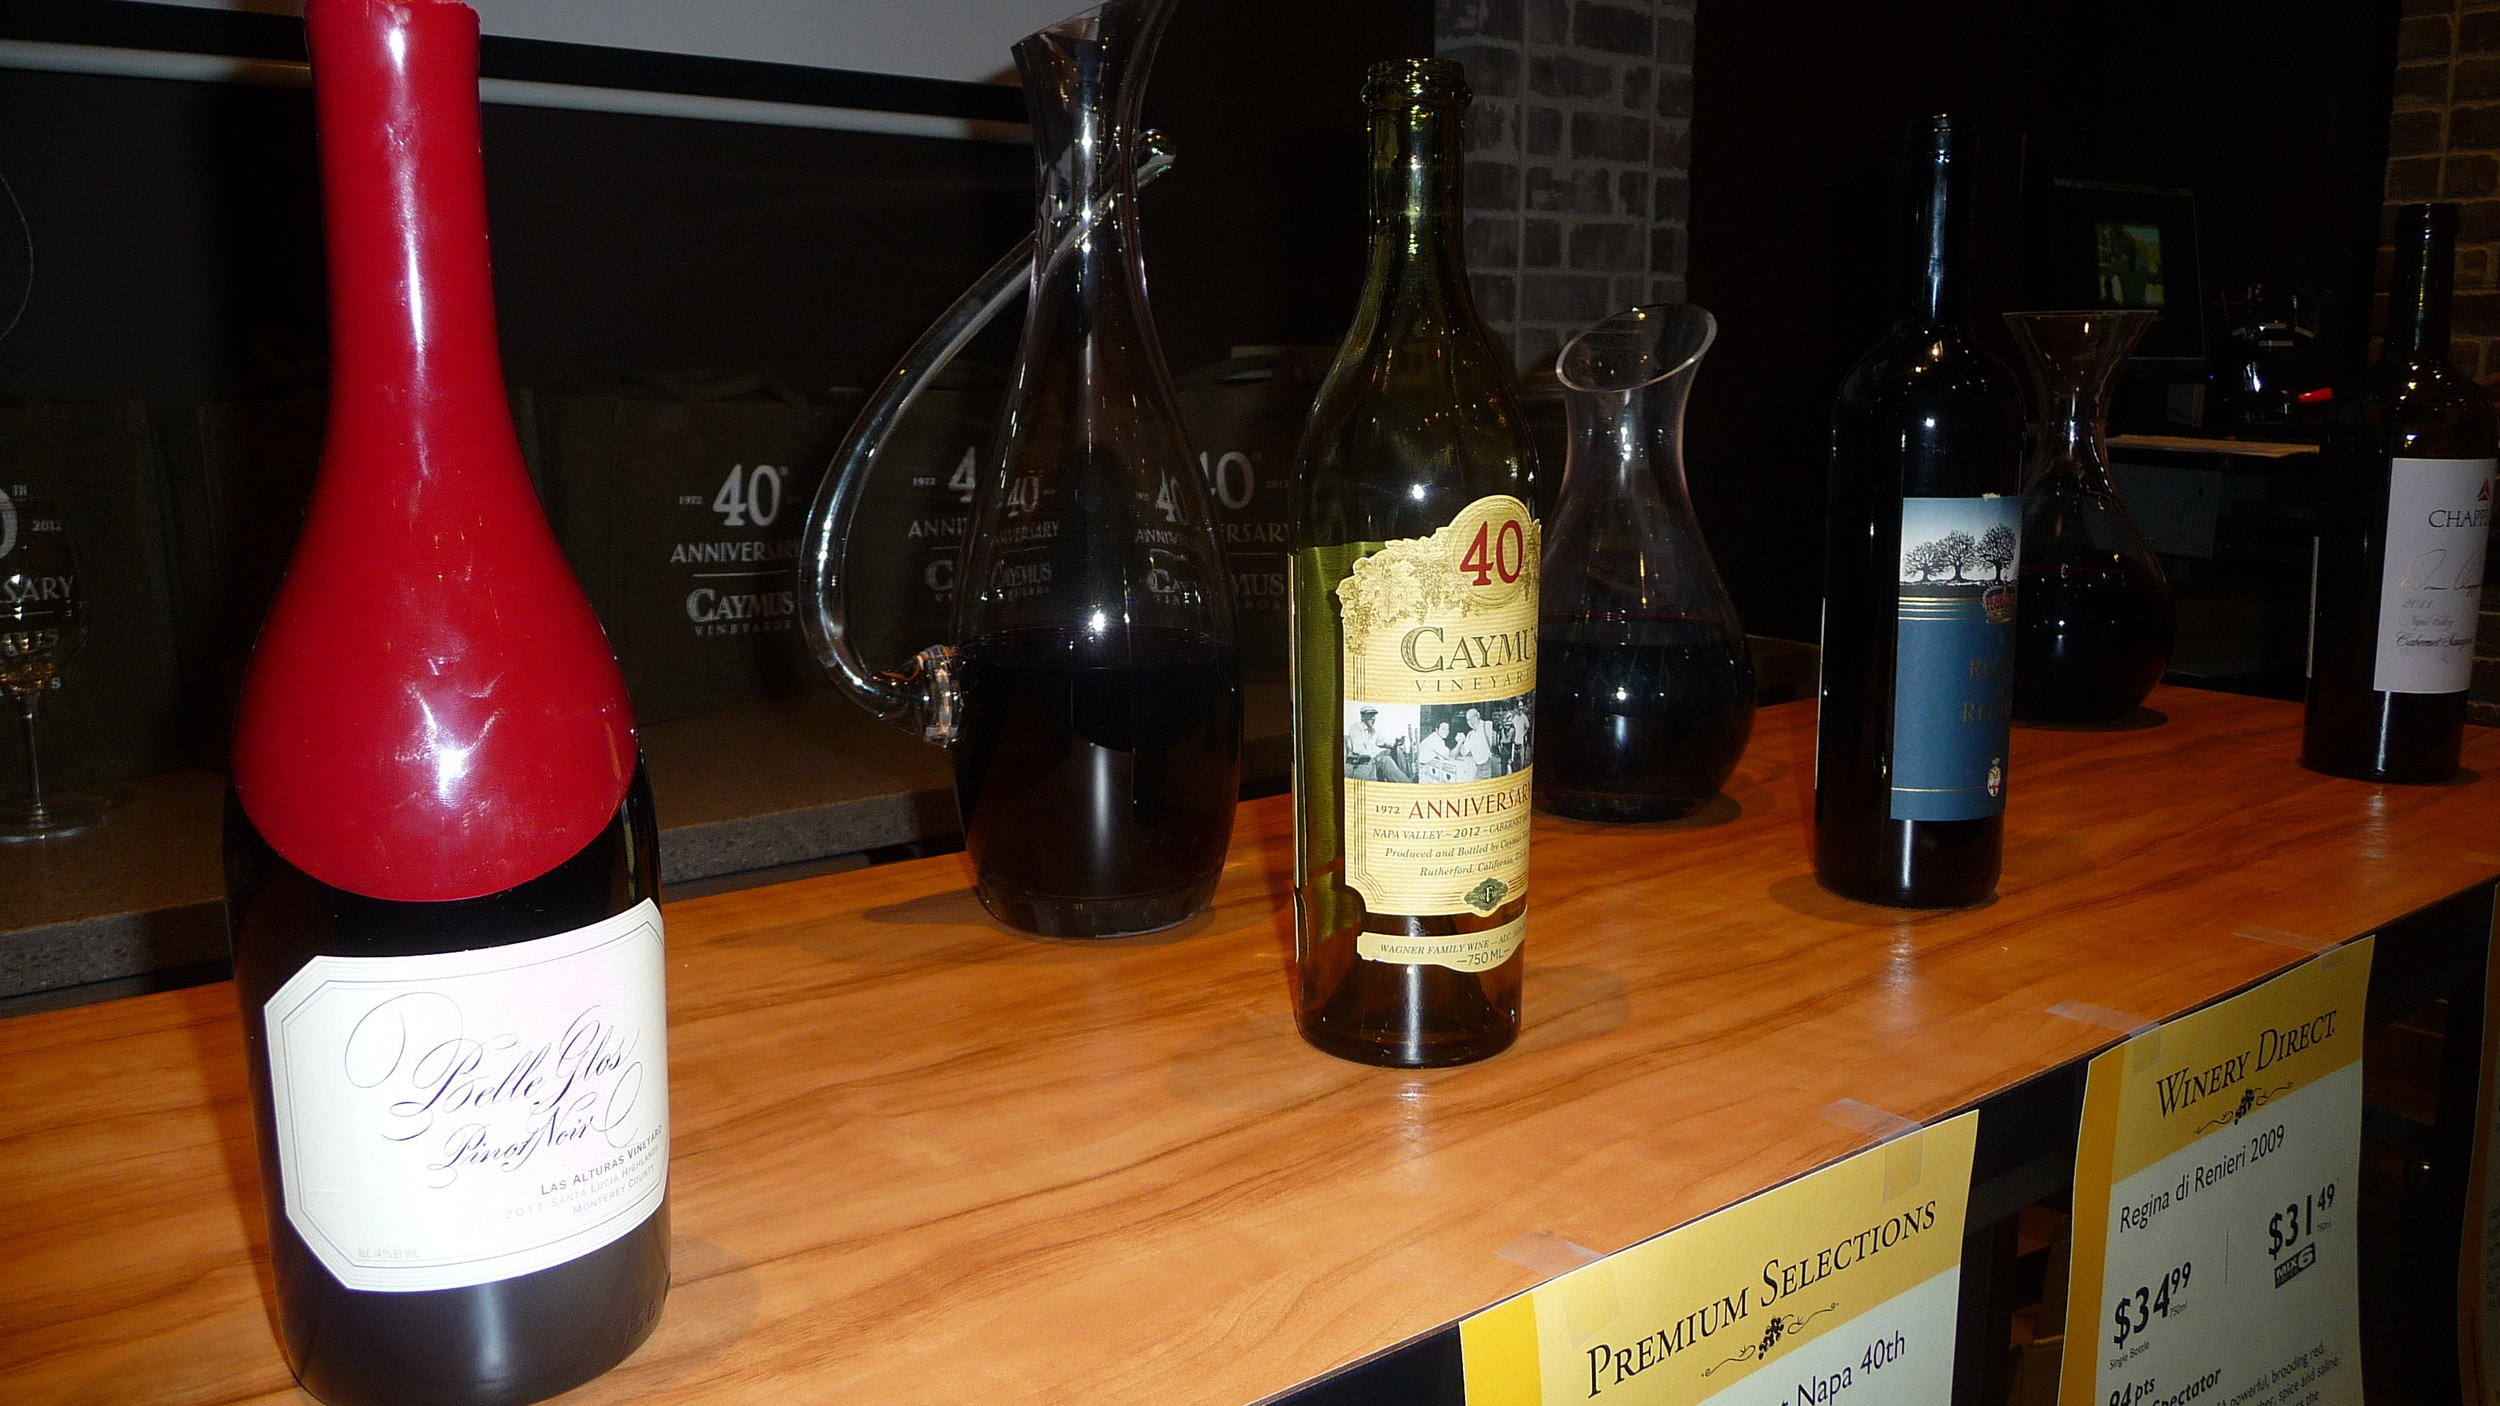 Partial Caymus wine tasting line up at Total Wine & More this past weekend